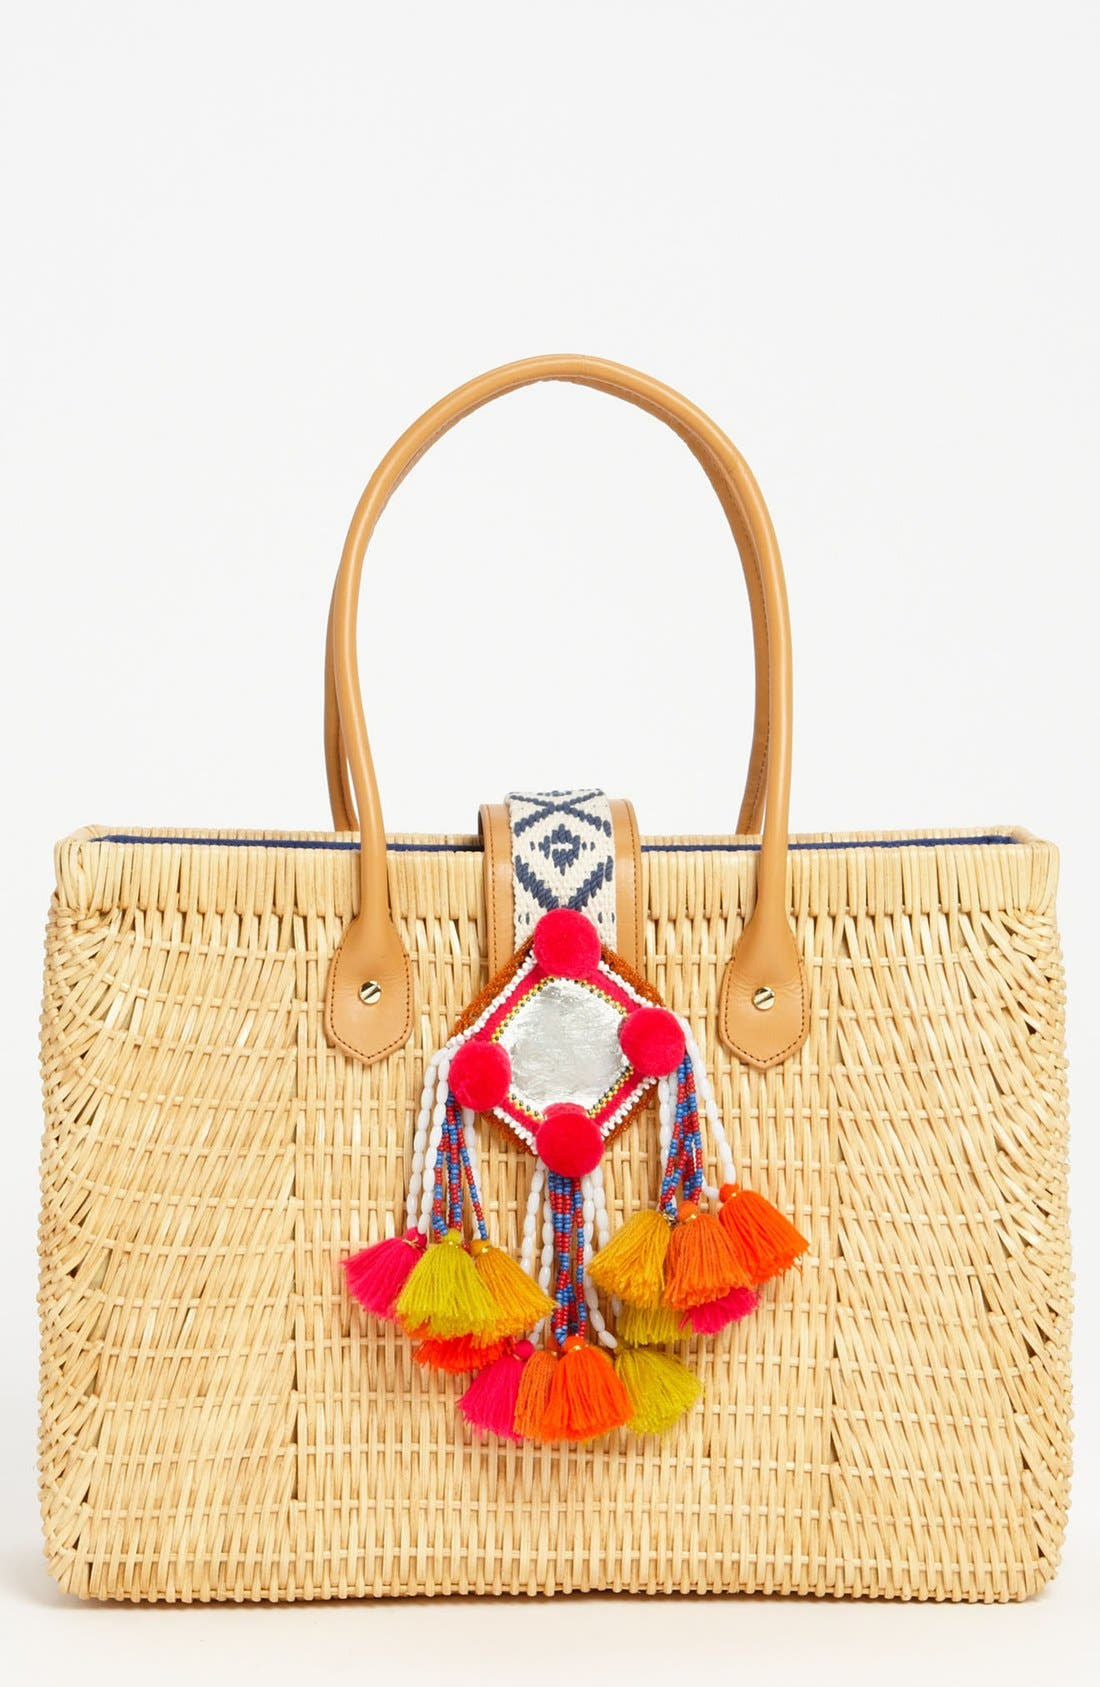 TORY BURCH Rattan Tote, Main, color, 282